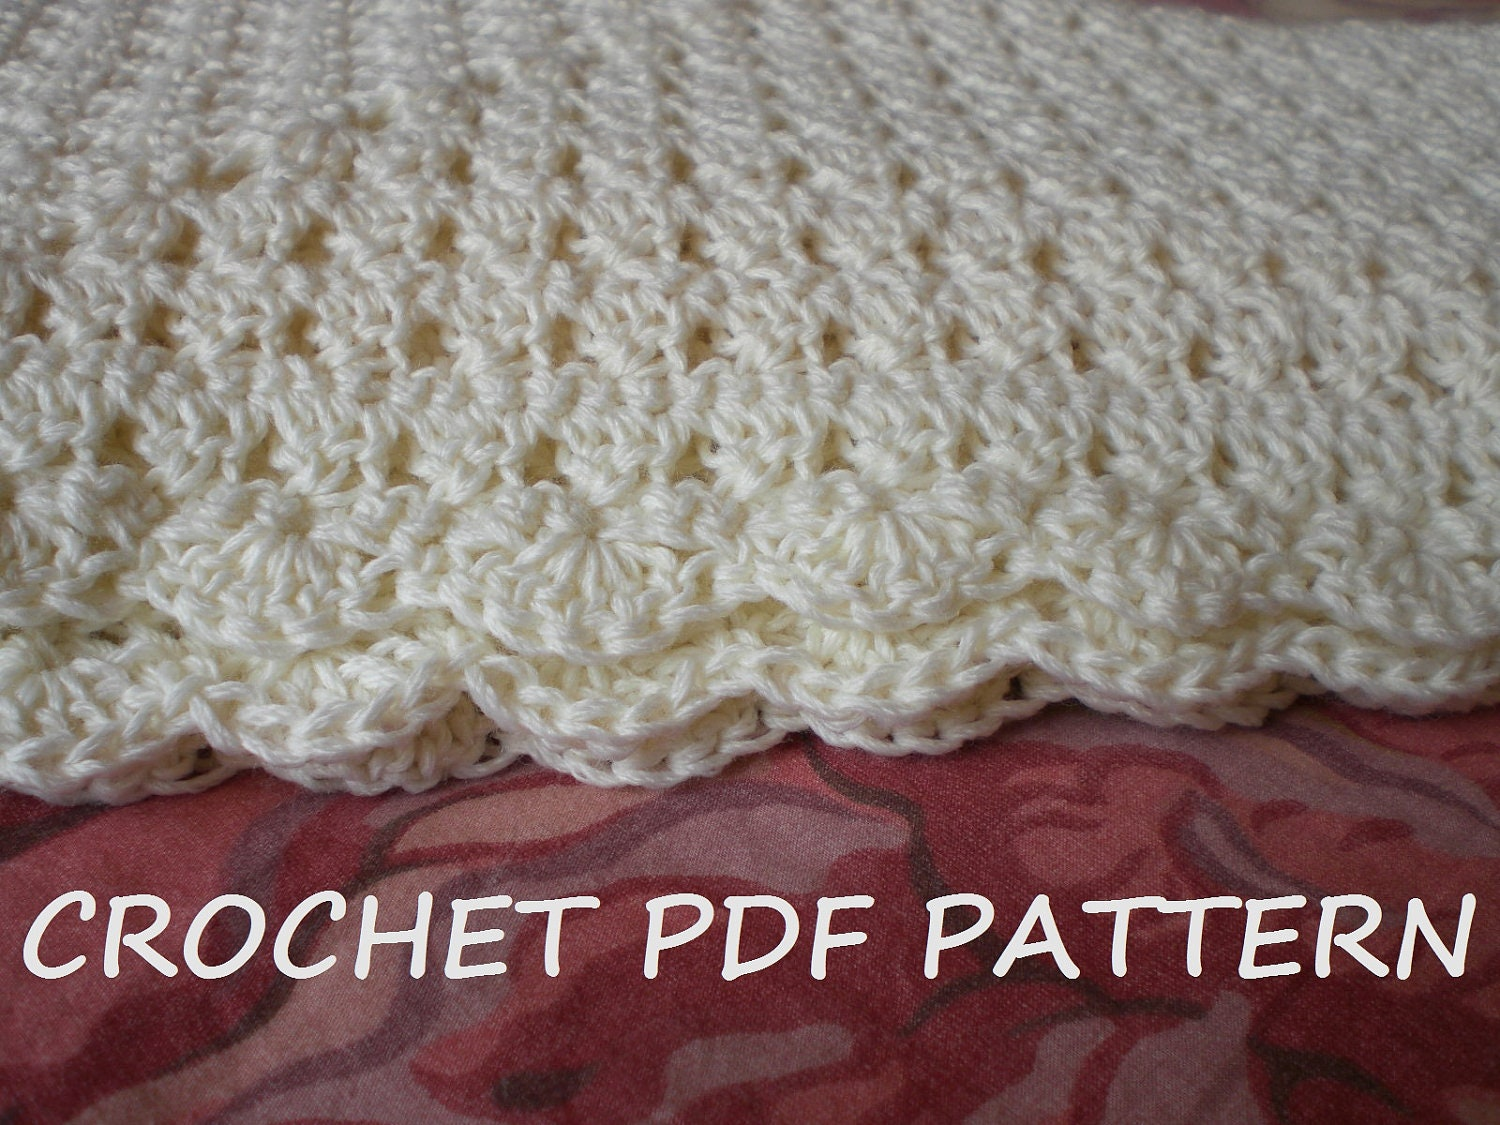 Crochet Baby Blanket Pattern. PDF 020. by vivartshop on Etsy